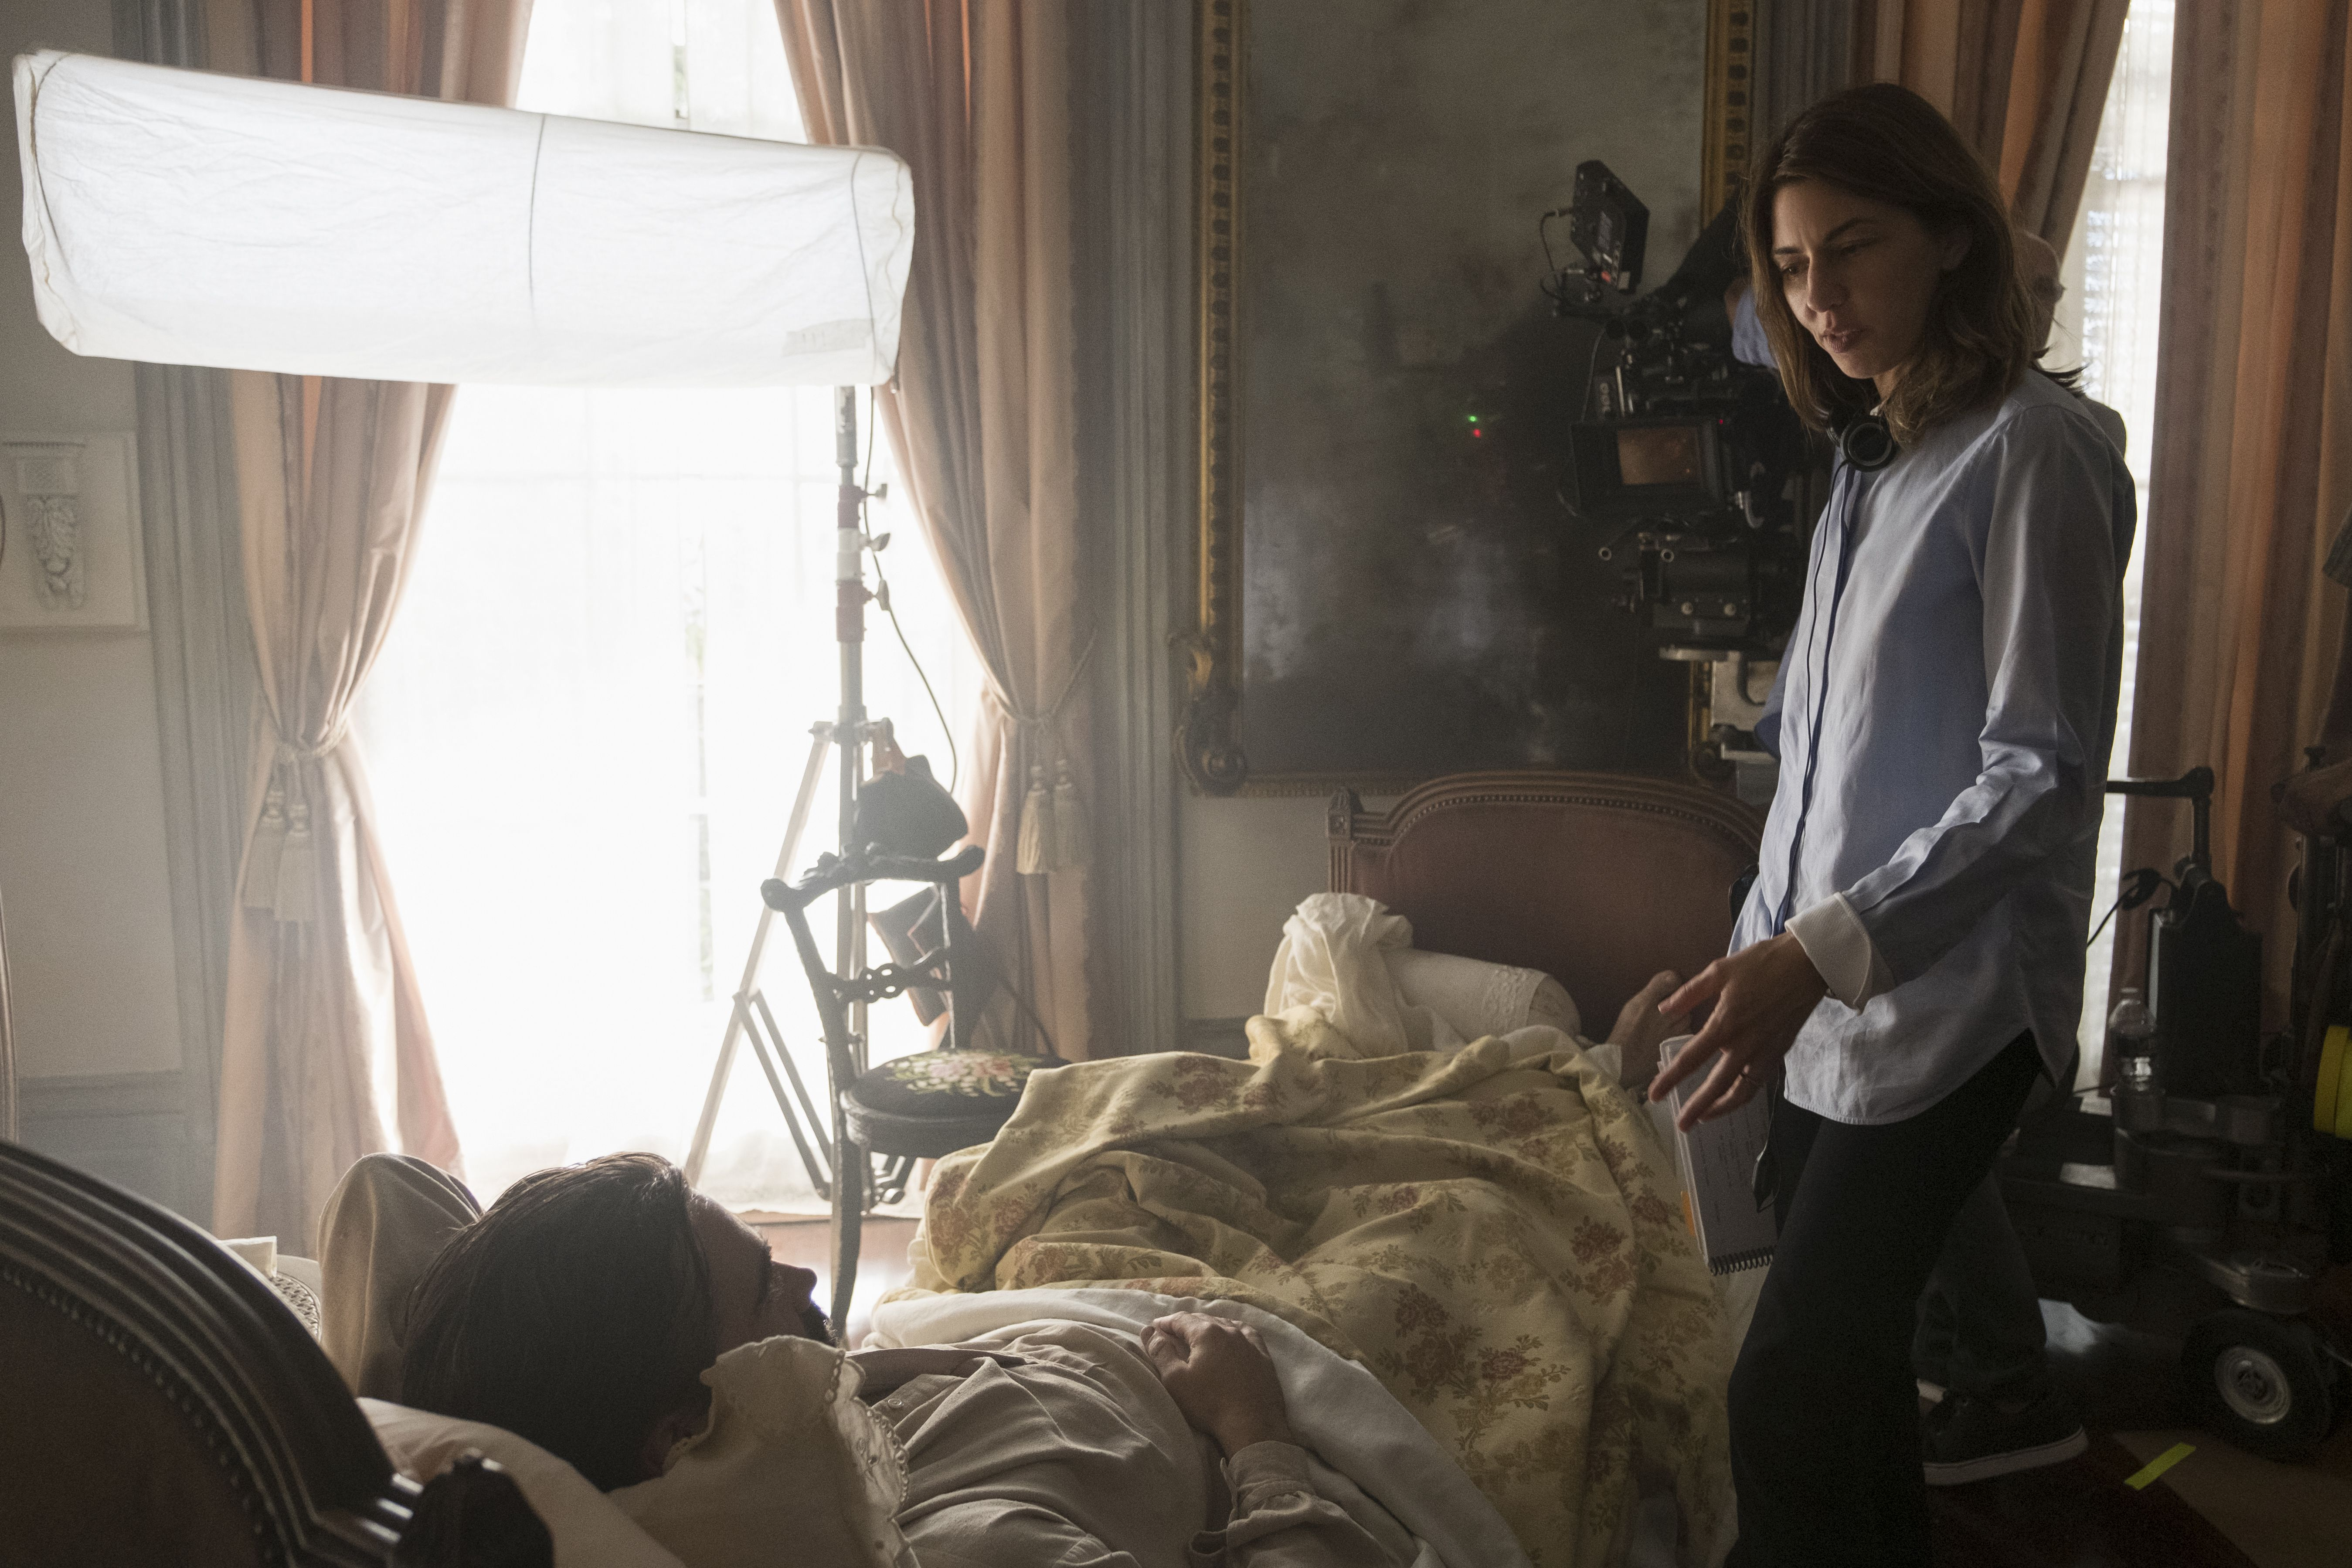 """No Merchandising. Editorial Use Only. No Book Cover UsageMandatory Credit: Photo by B Rothstein/Focus Features/Kobal/REX/Shutterstock (8877346u) Sofia Coppola """"The Beguiled"""" Film - 2017"""